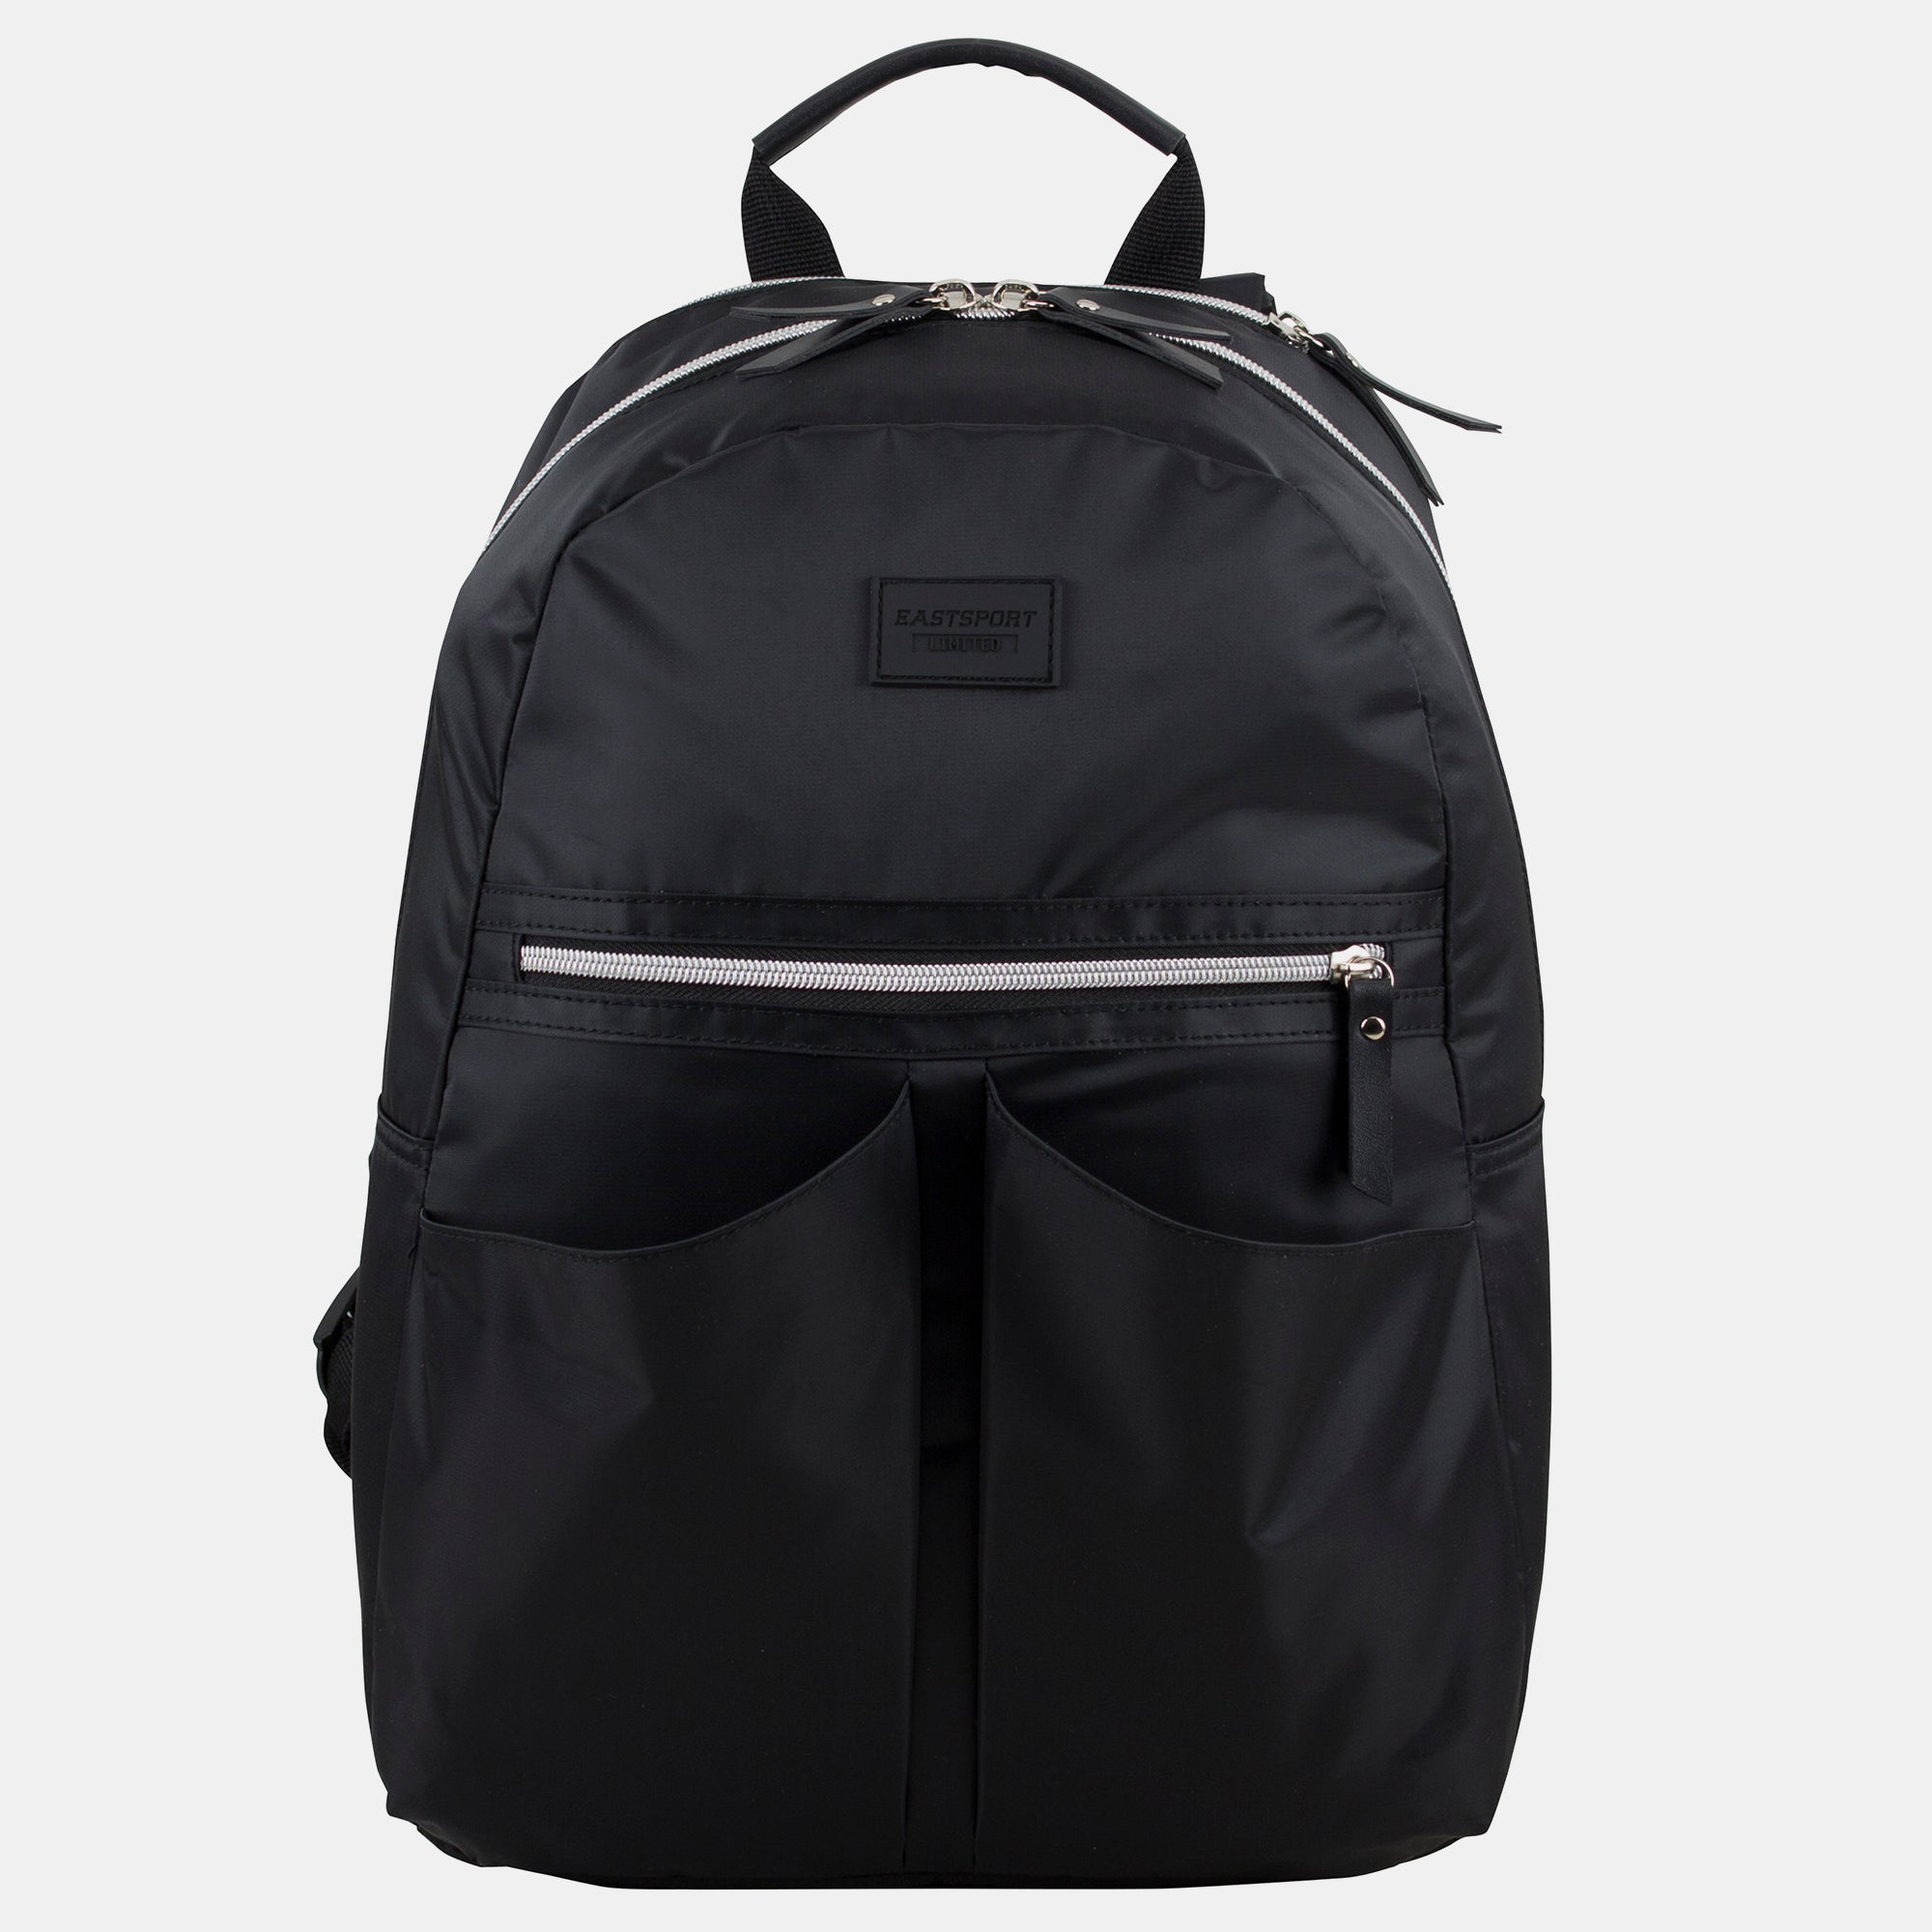 Eastsport Limited Chic Pack Backpack